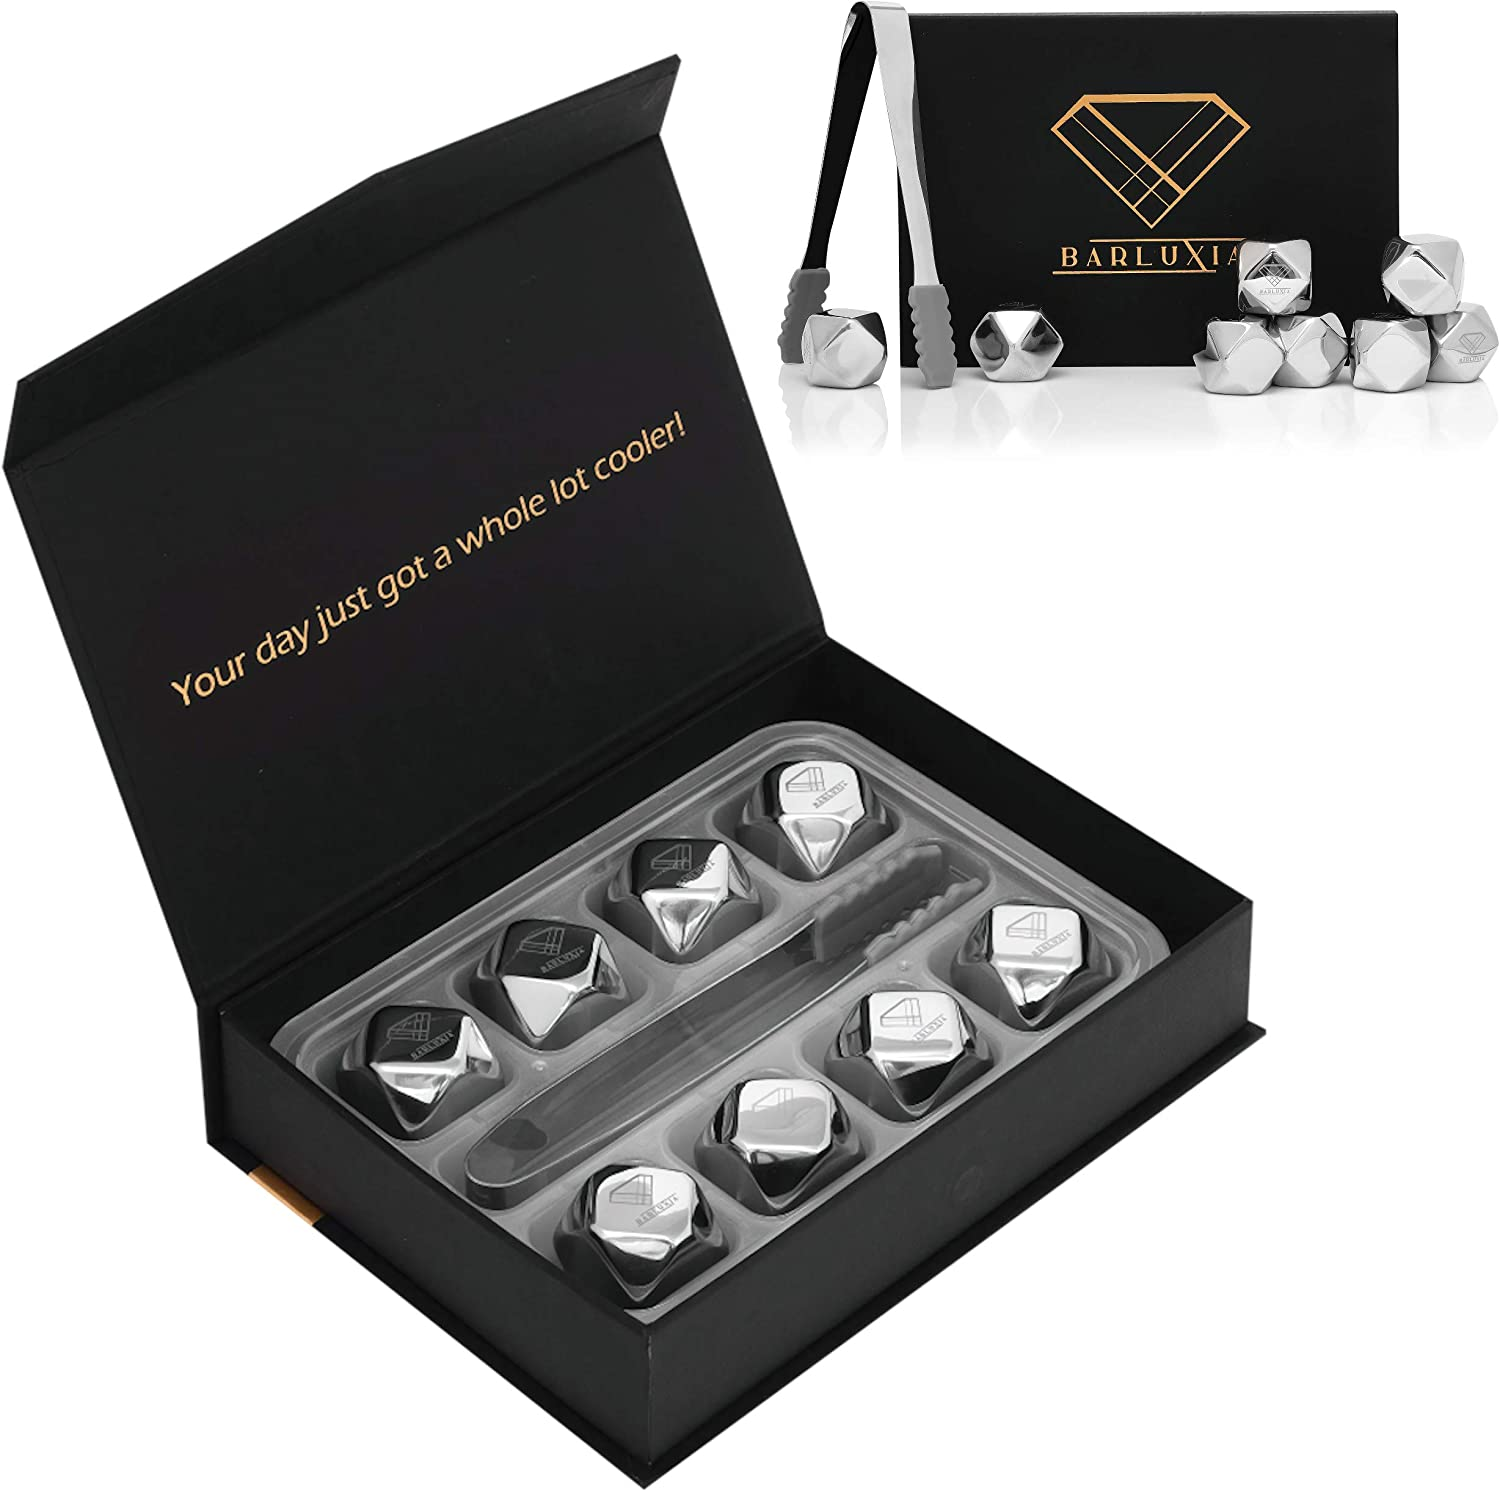 Barluxia Stainless Steel Ice Cube Gift Set of 8 Polygon Reusable Metal Ice Cubes, Ice Tongs & Storage Tray - Whiskey Rocks/Chilling Stones for Whiskey, Wine, Cocktails or any Drinks